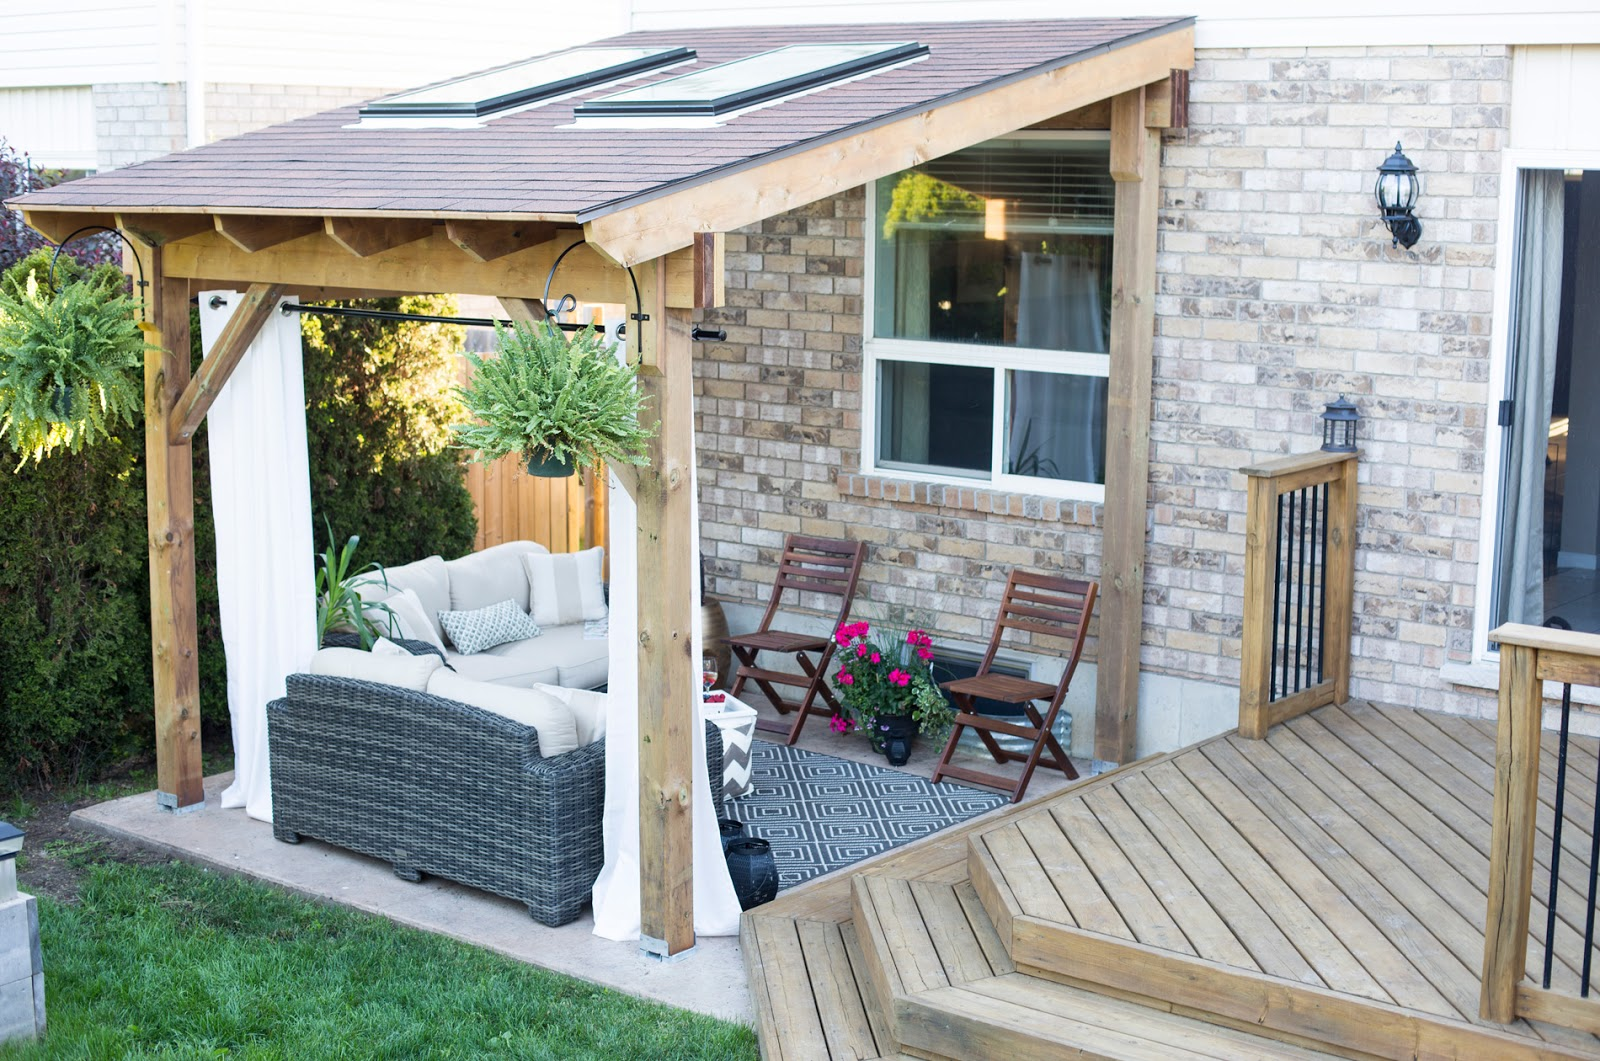 Easy build Covered patios designs - CareHomeDecor